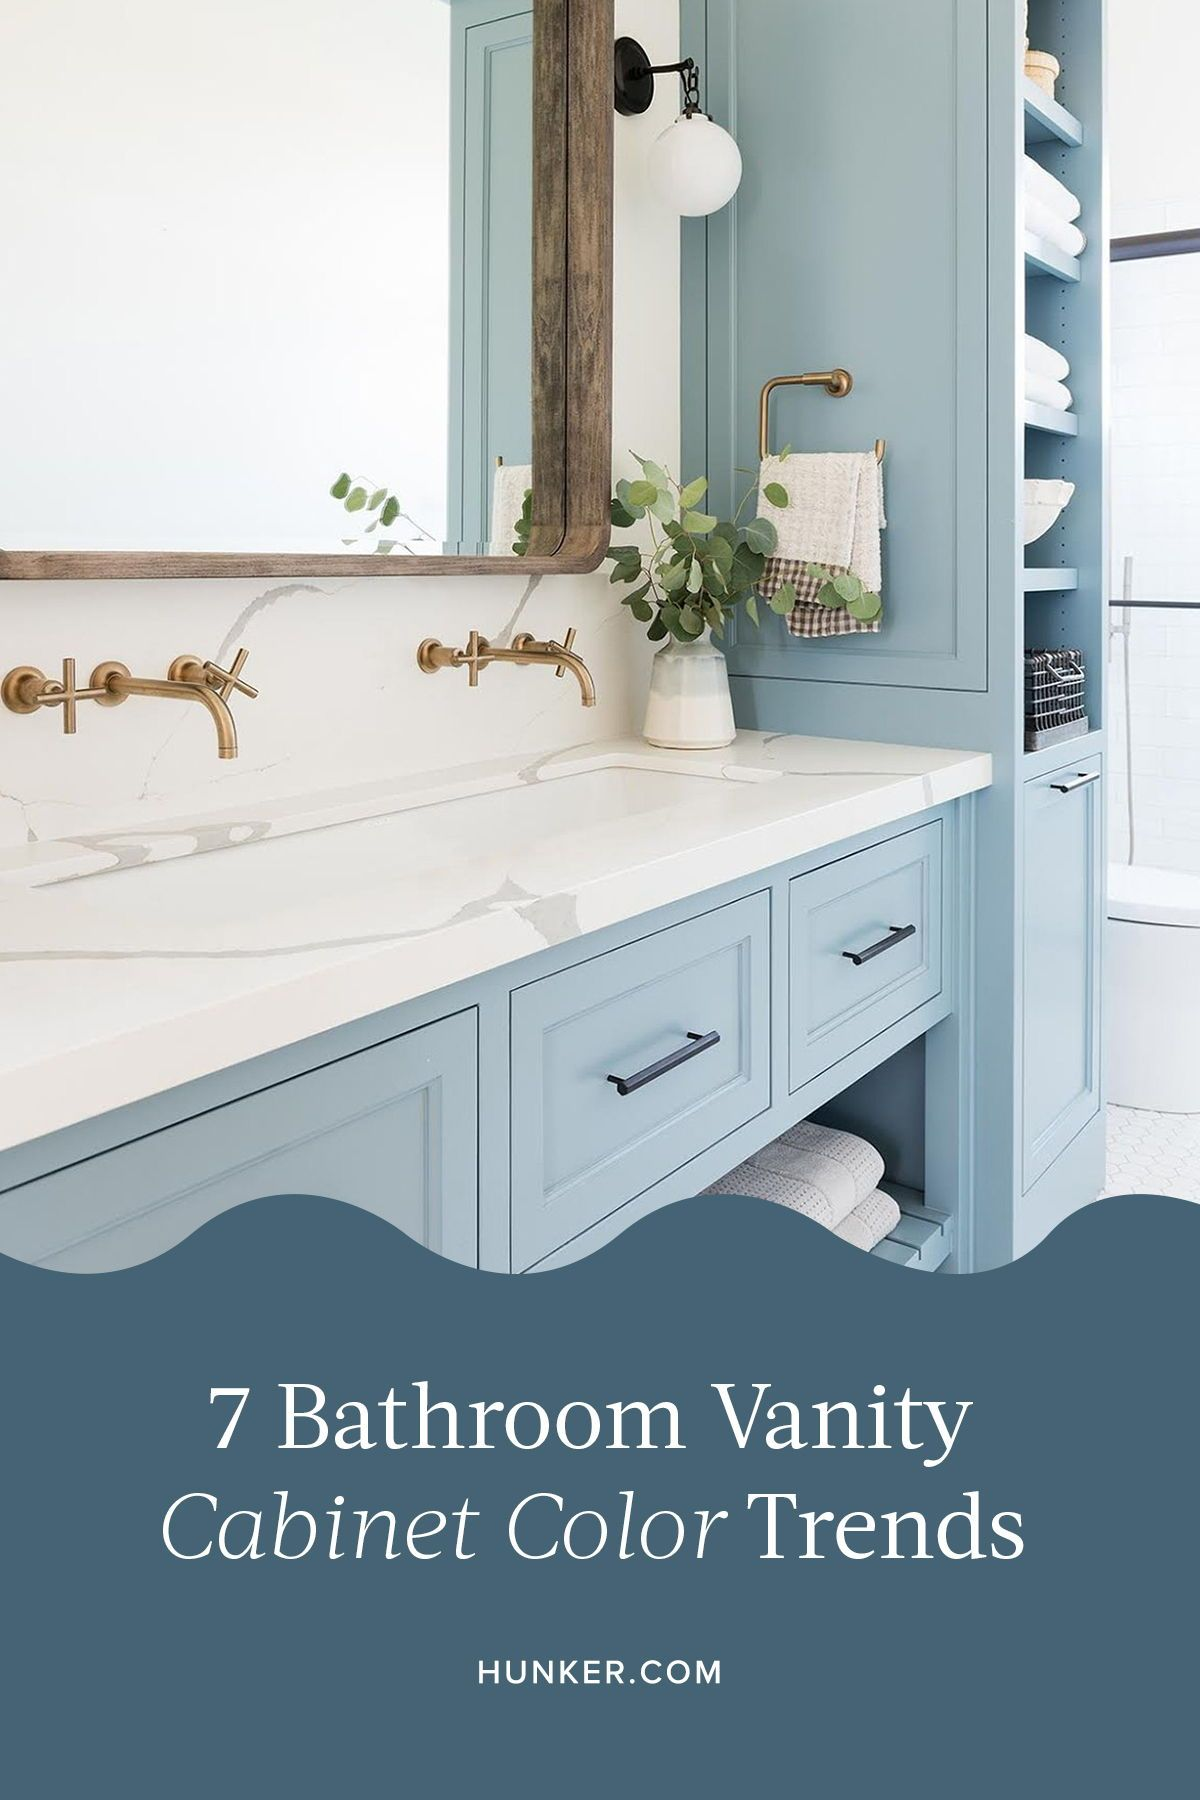 7 Bathroom Vanity Cabinet Colors You Ll See Everywhere In 2020 In 2020 Bathroom Vanity Cabinets Bathroom Cabinet Colors Cabinet Colors